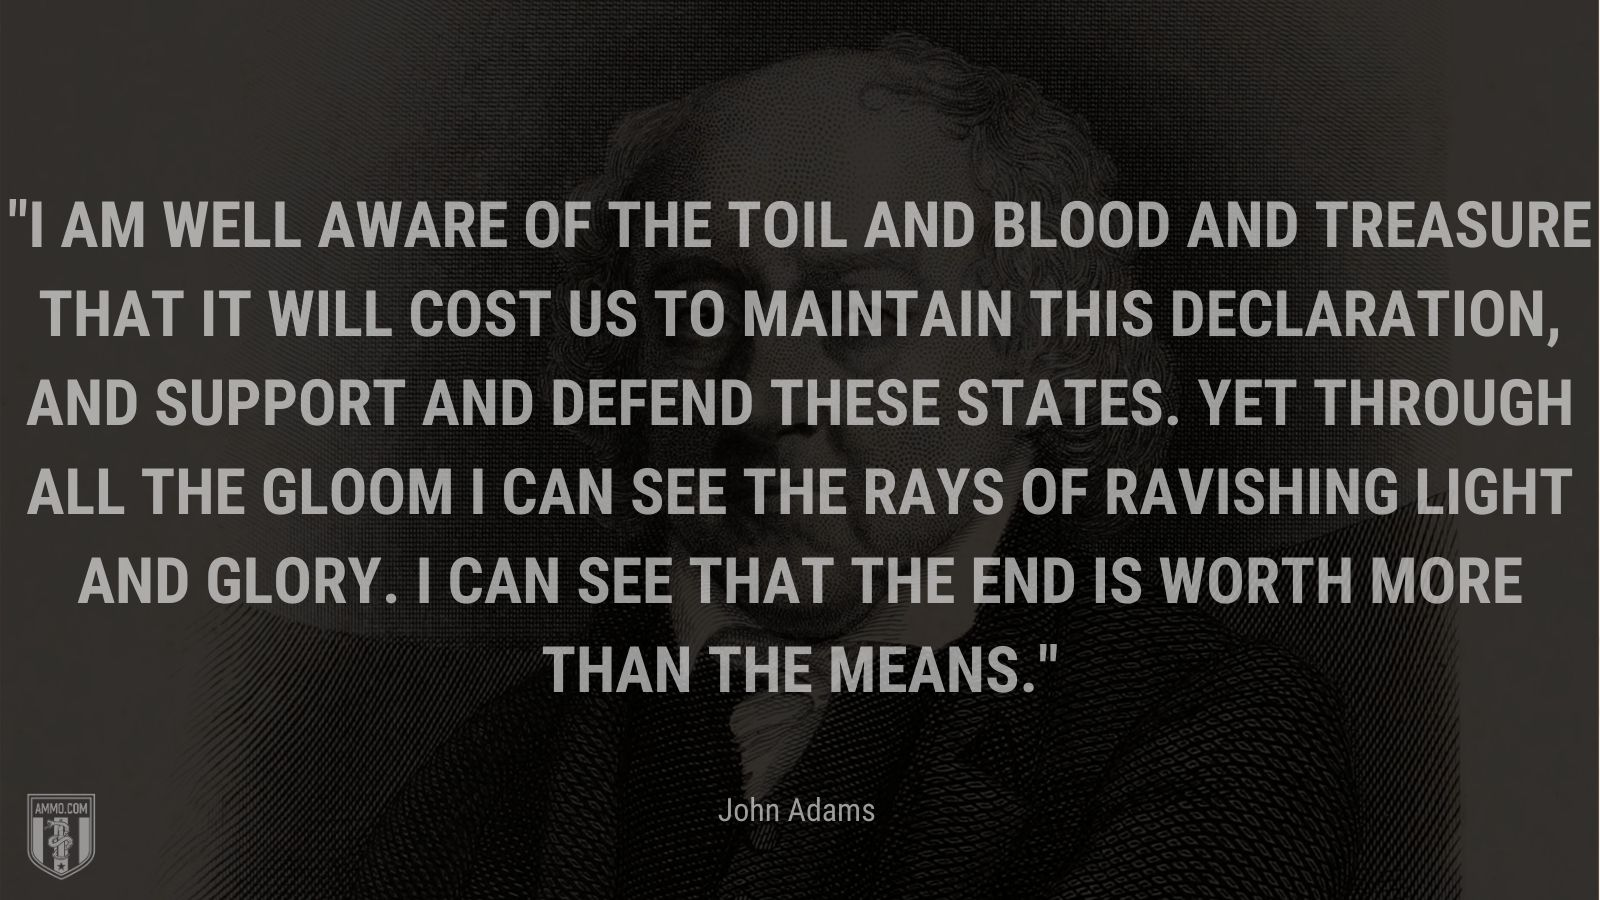 """""""I am well aware of the Toil and Blood and Treasure that it will cost us to maintain this Declaration, and support and defend these States. Yet through all the gloom I can see the rays of ravishing light and glory. I can see that the end is worth more than the means."""" - John Adams"""